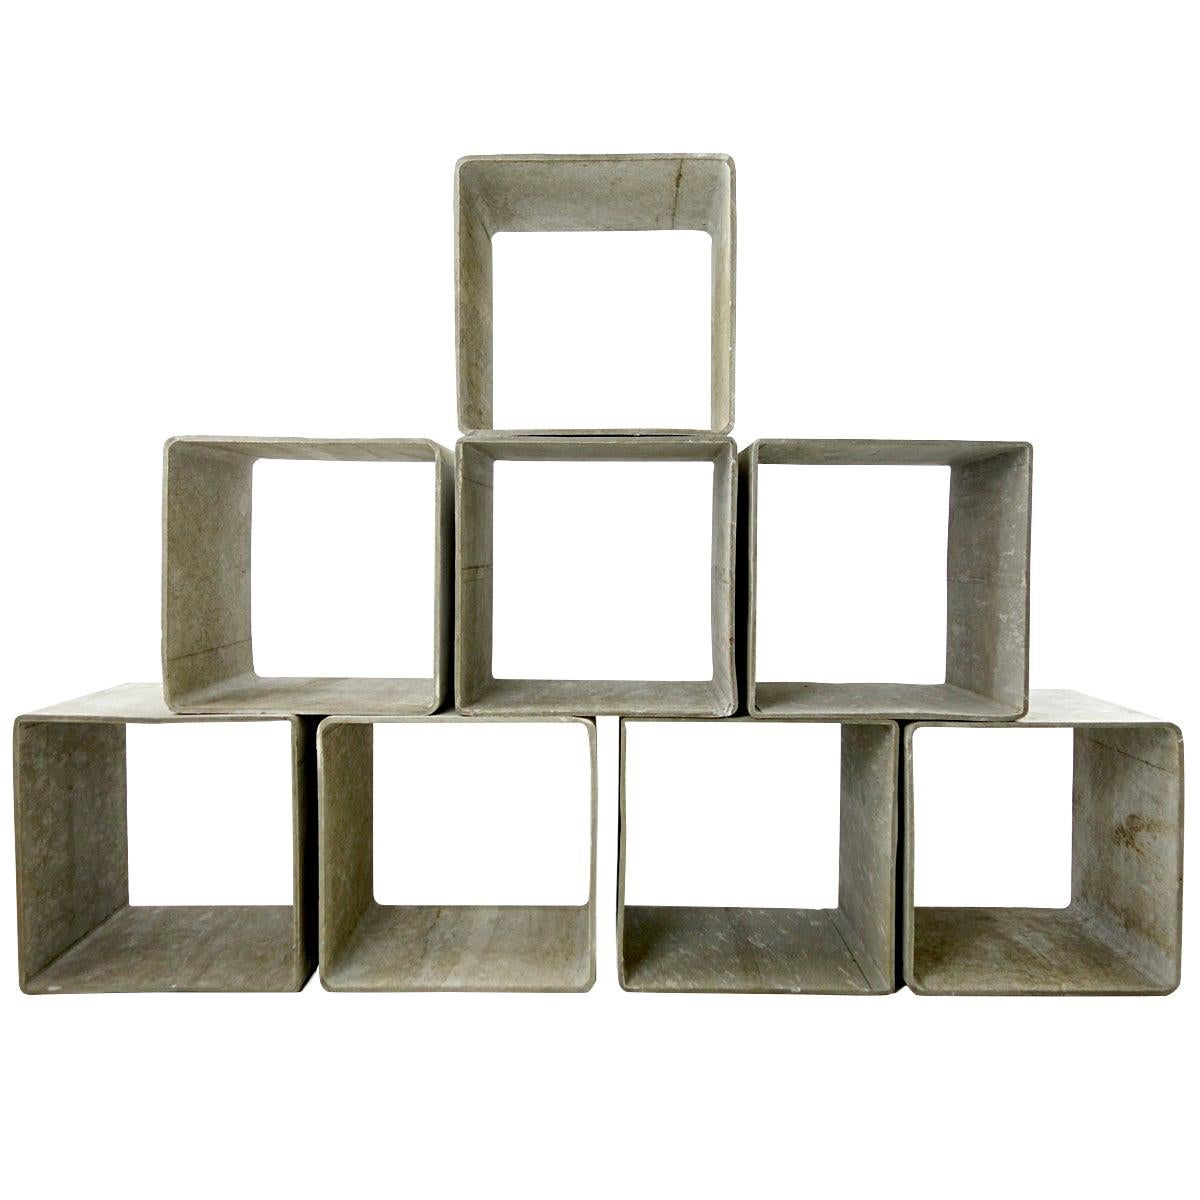 Set of 8 Modular Cement Cubes by Willy Guhl for Eternit